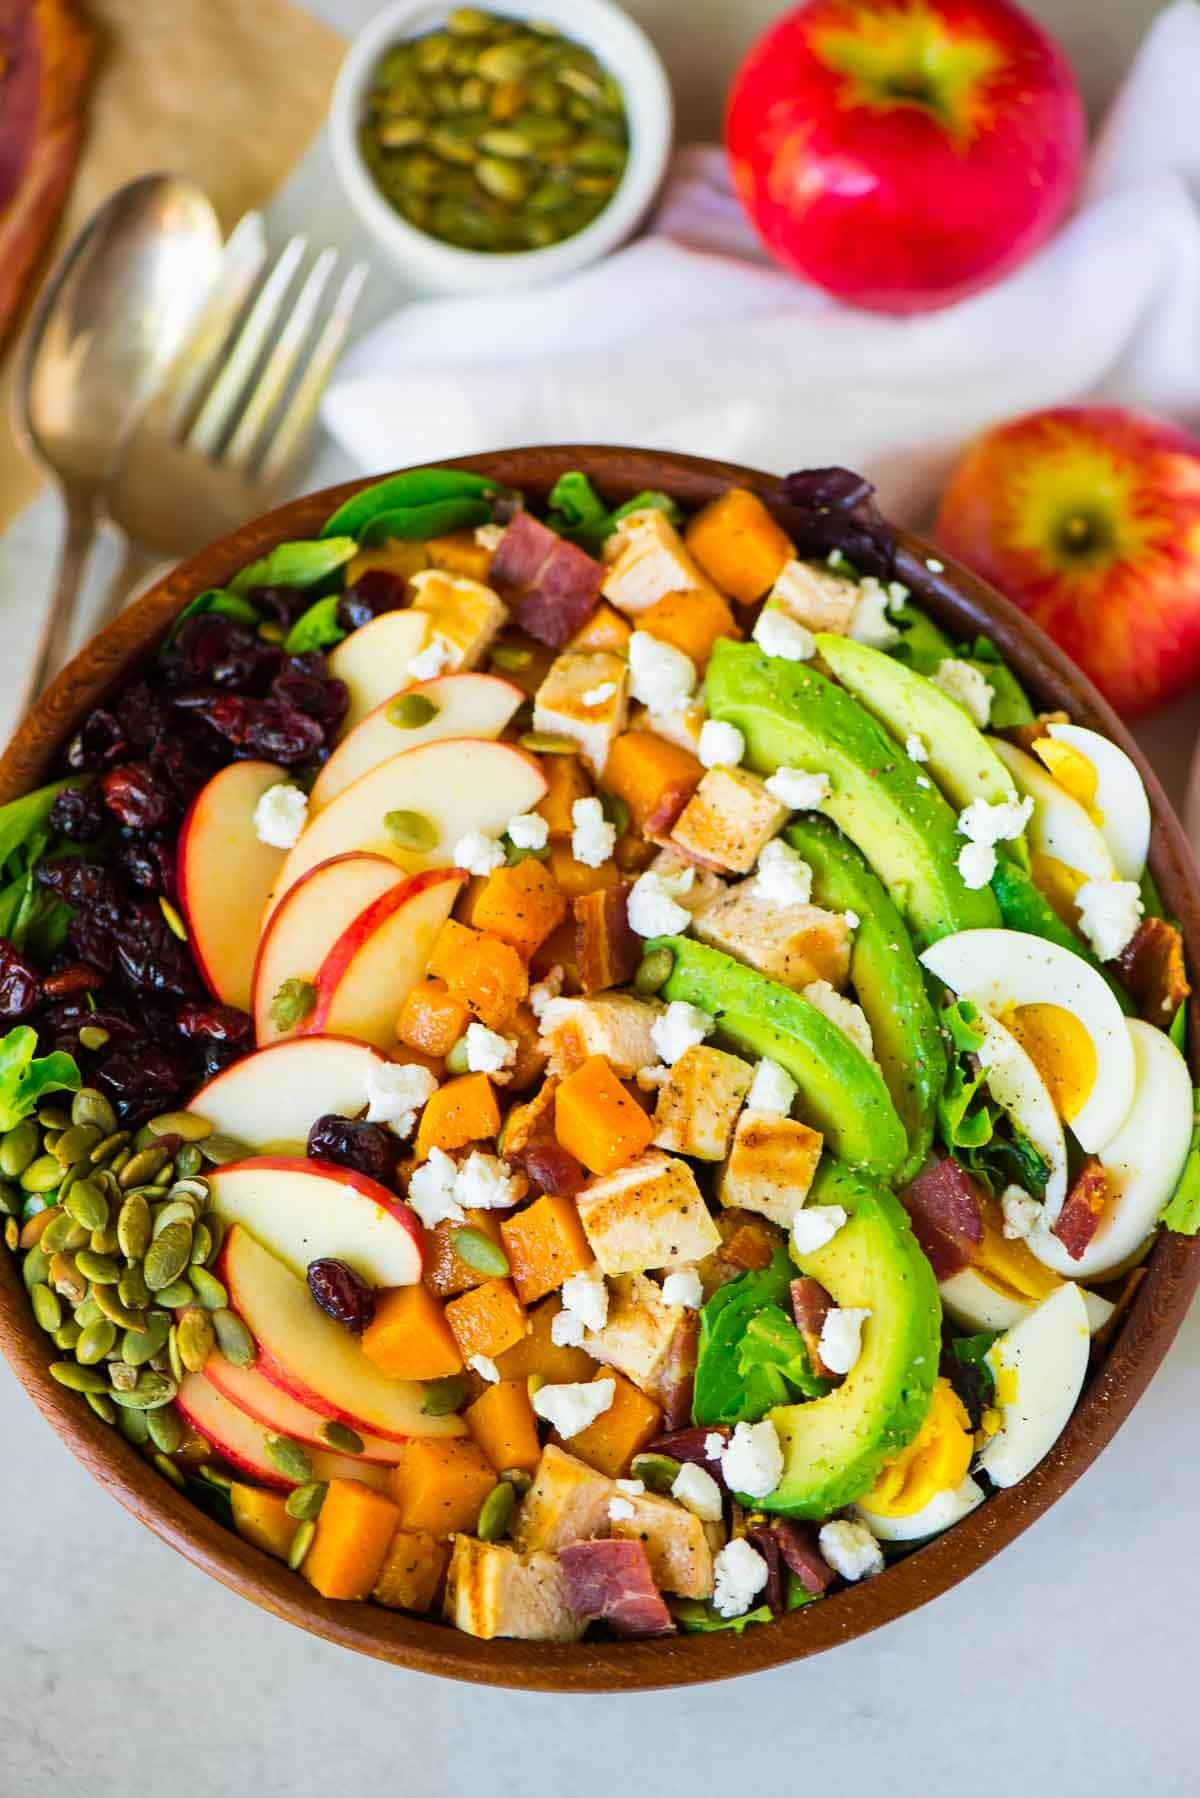 Butternut Squash Cobb Salad with Apples, Cranberries, and Goat Cheese. The BEST fall salad recipe for a main dish salad, Thanksgiving side dish, or holiday part. Recipe at wellplated.com | @wellplated